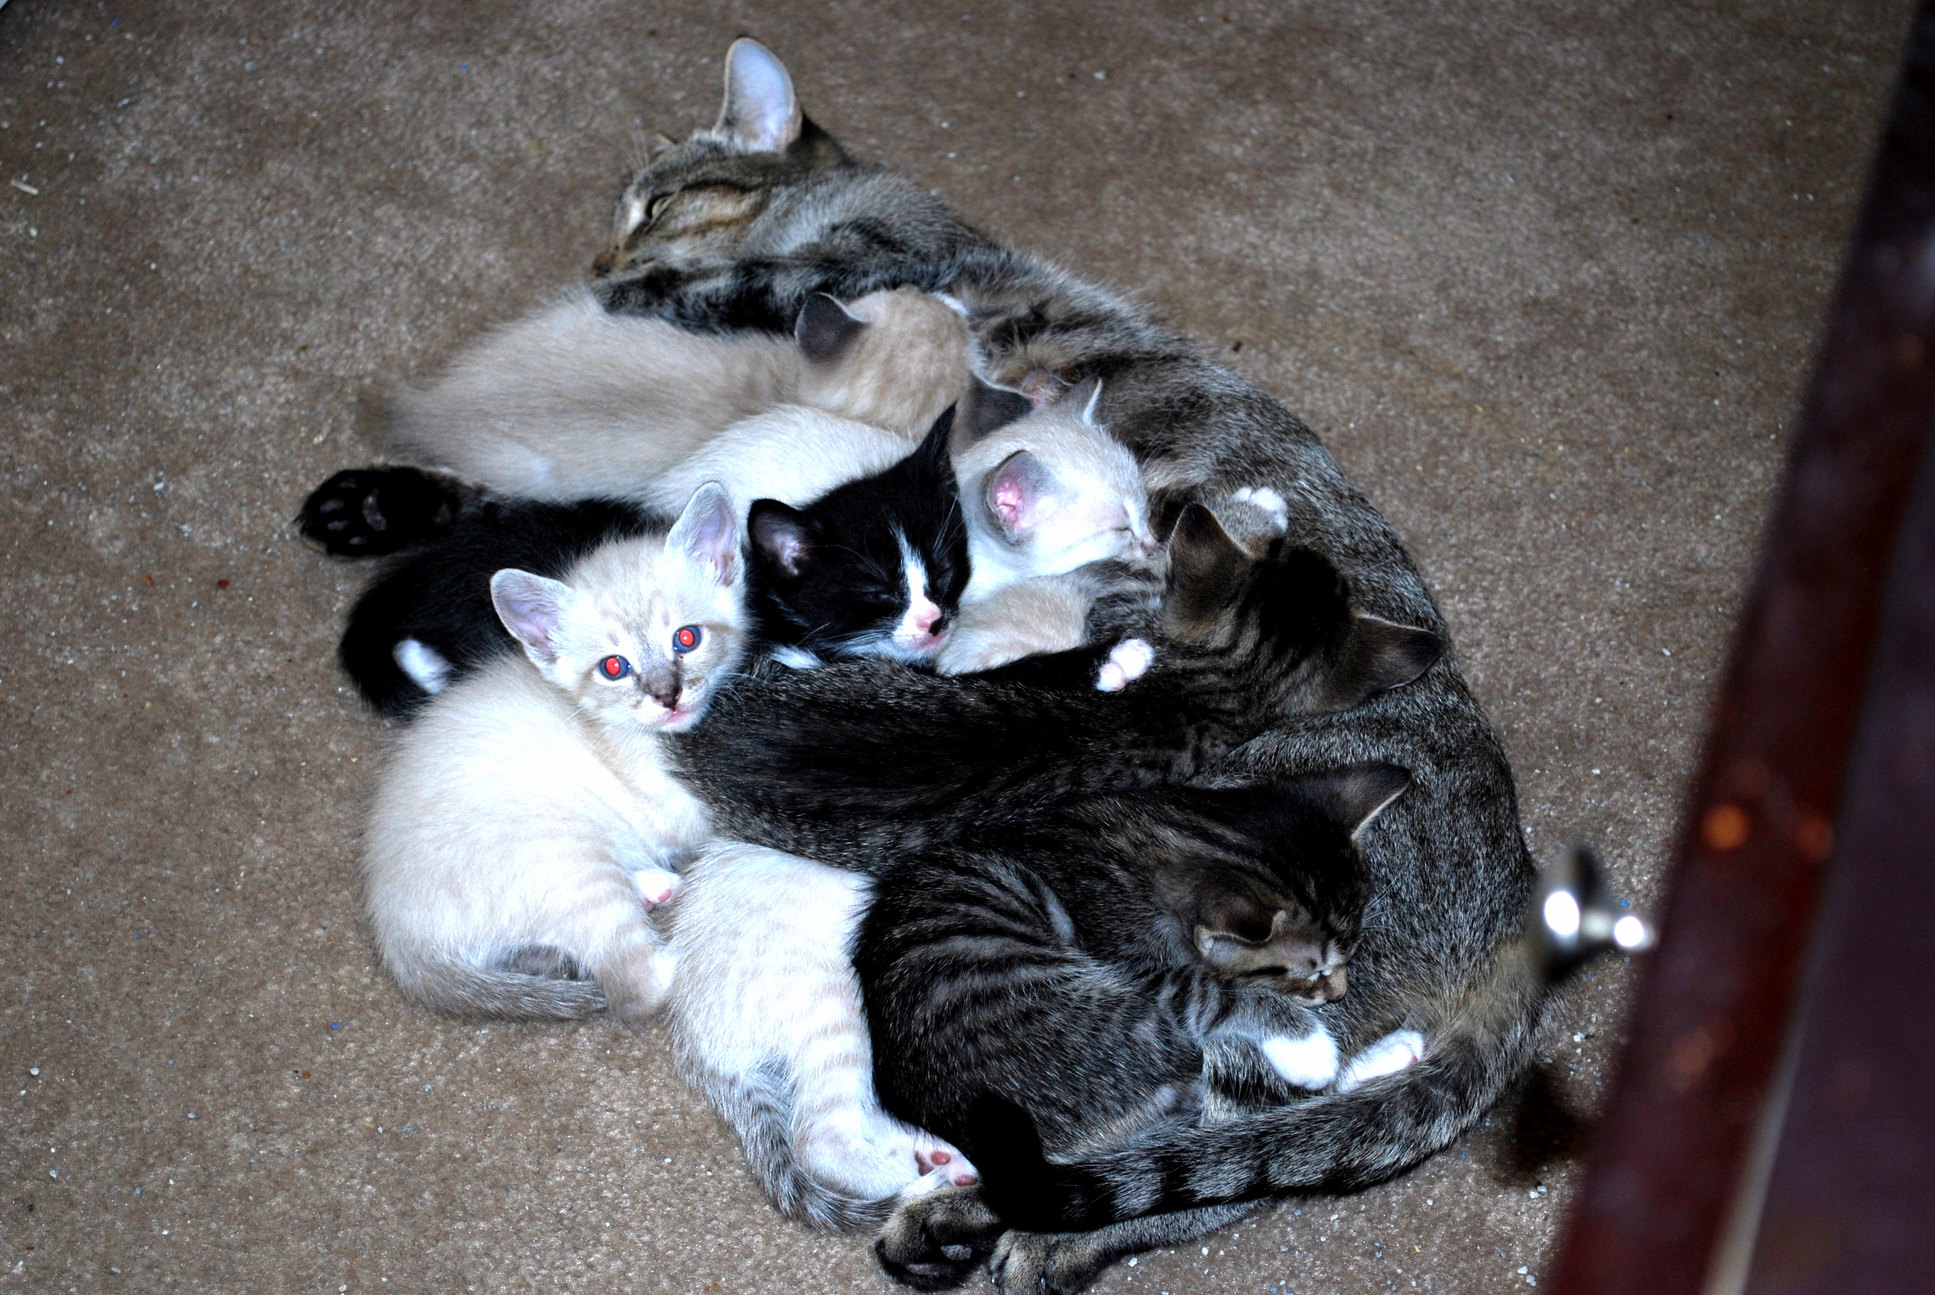 Good job mom. now this is a cat pile